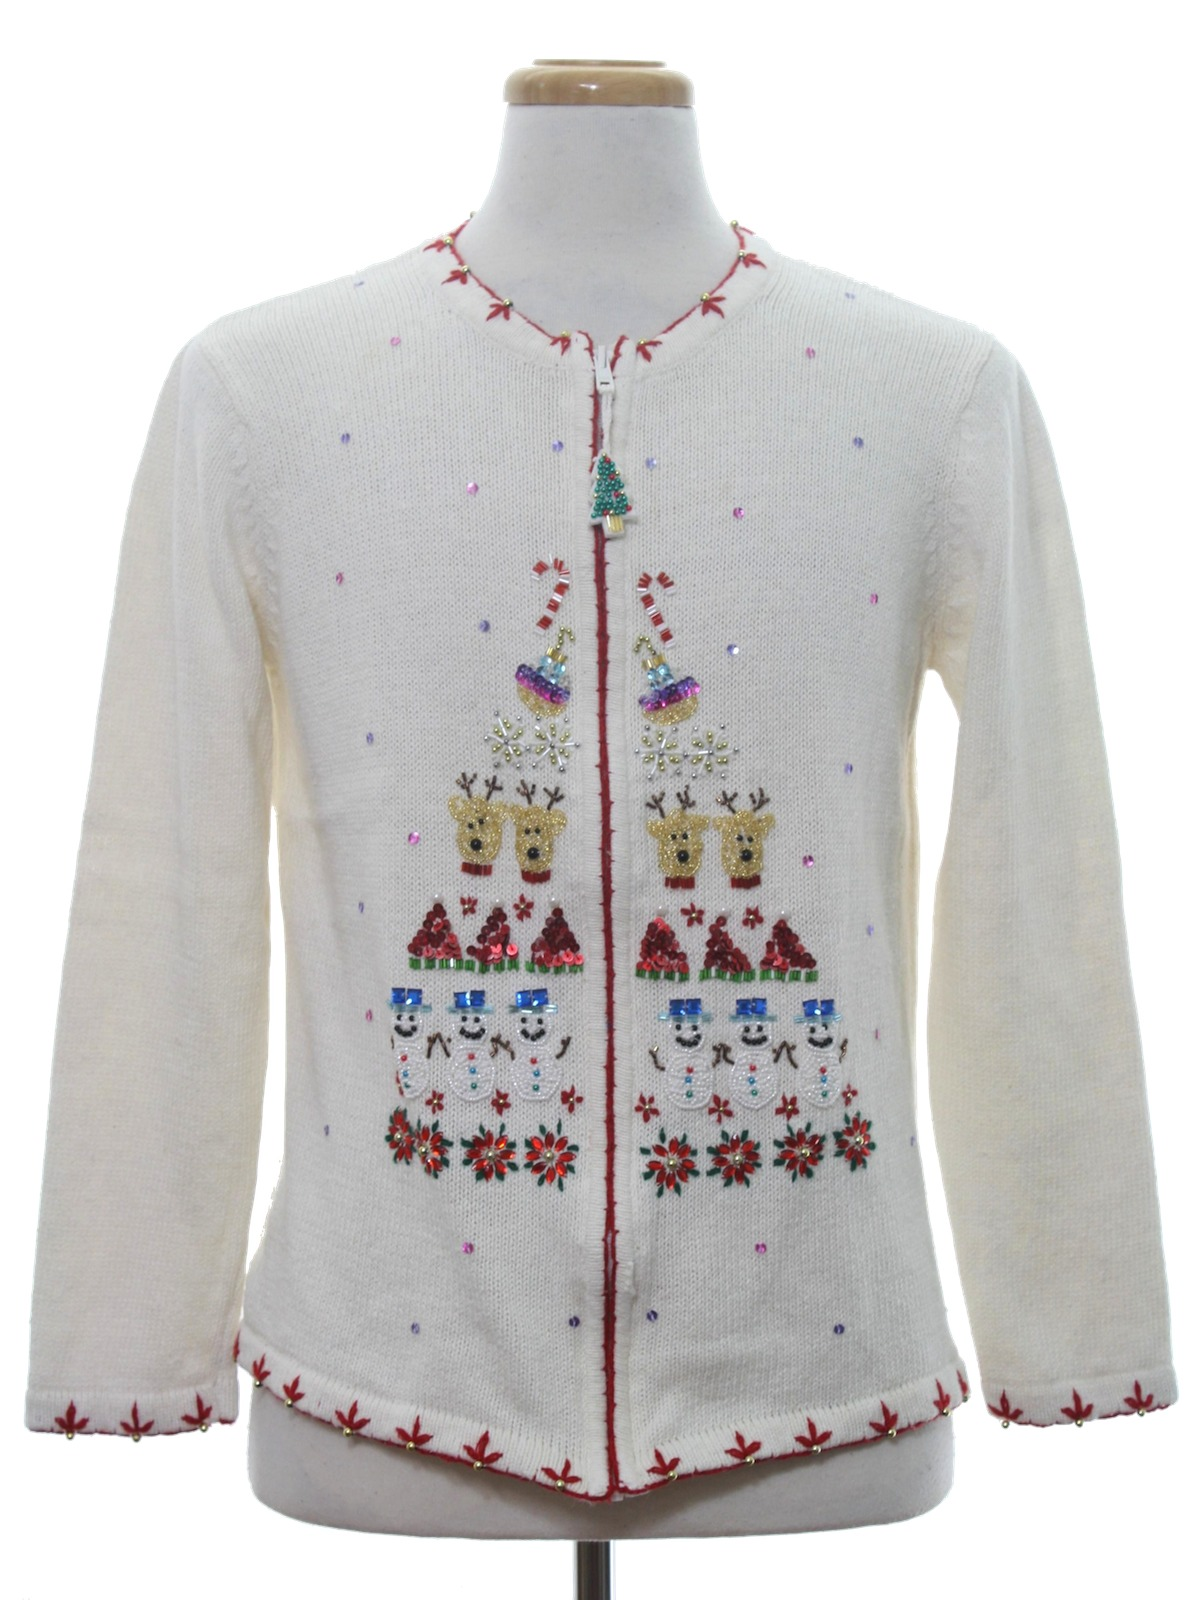 Womens Ugly Christmas Sweater: -Fabric Label- Womens winter white